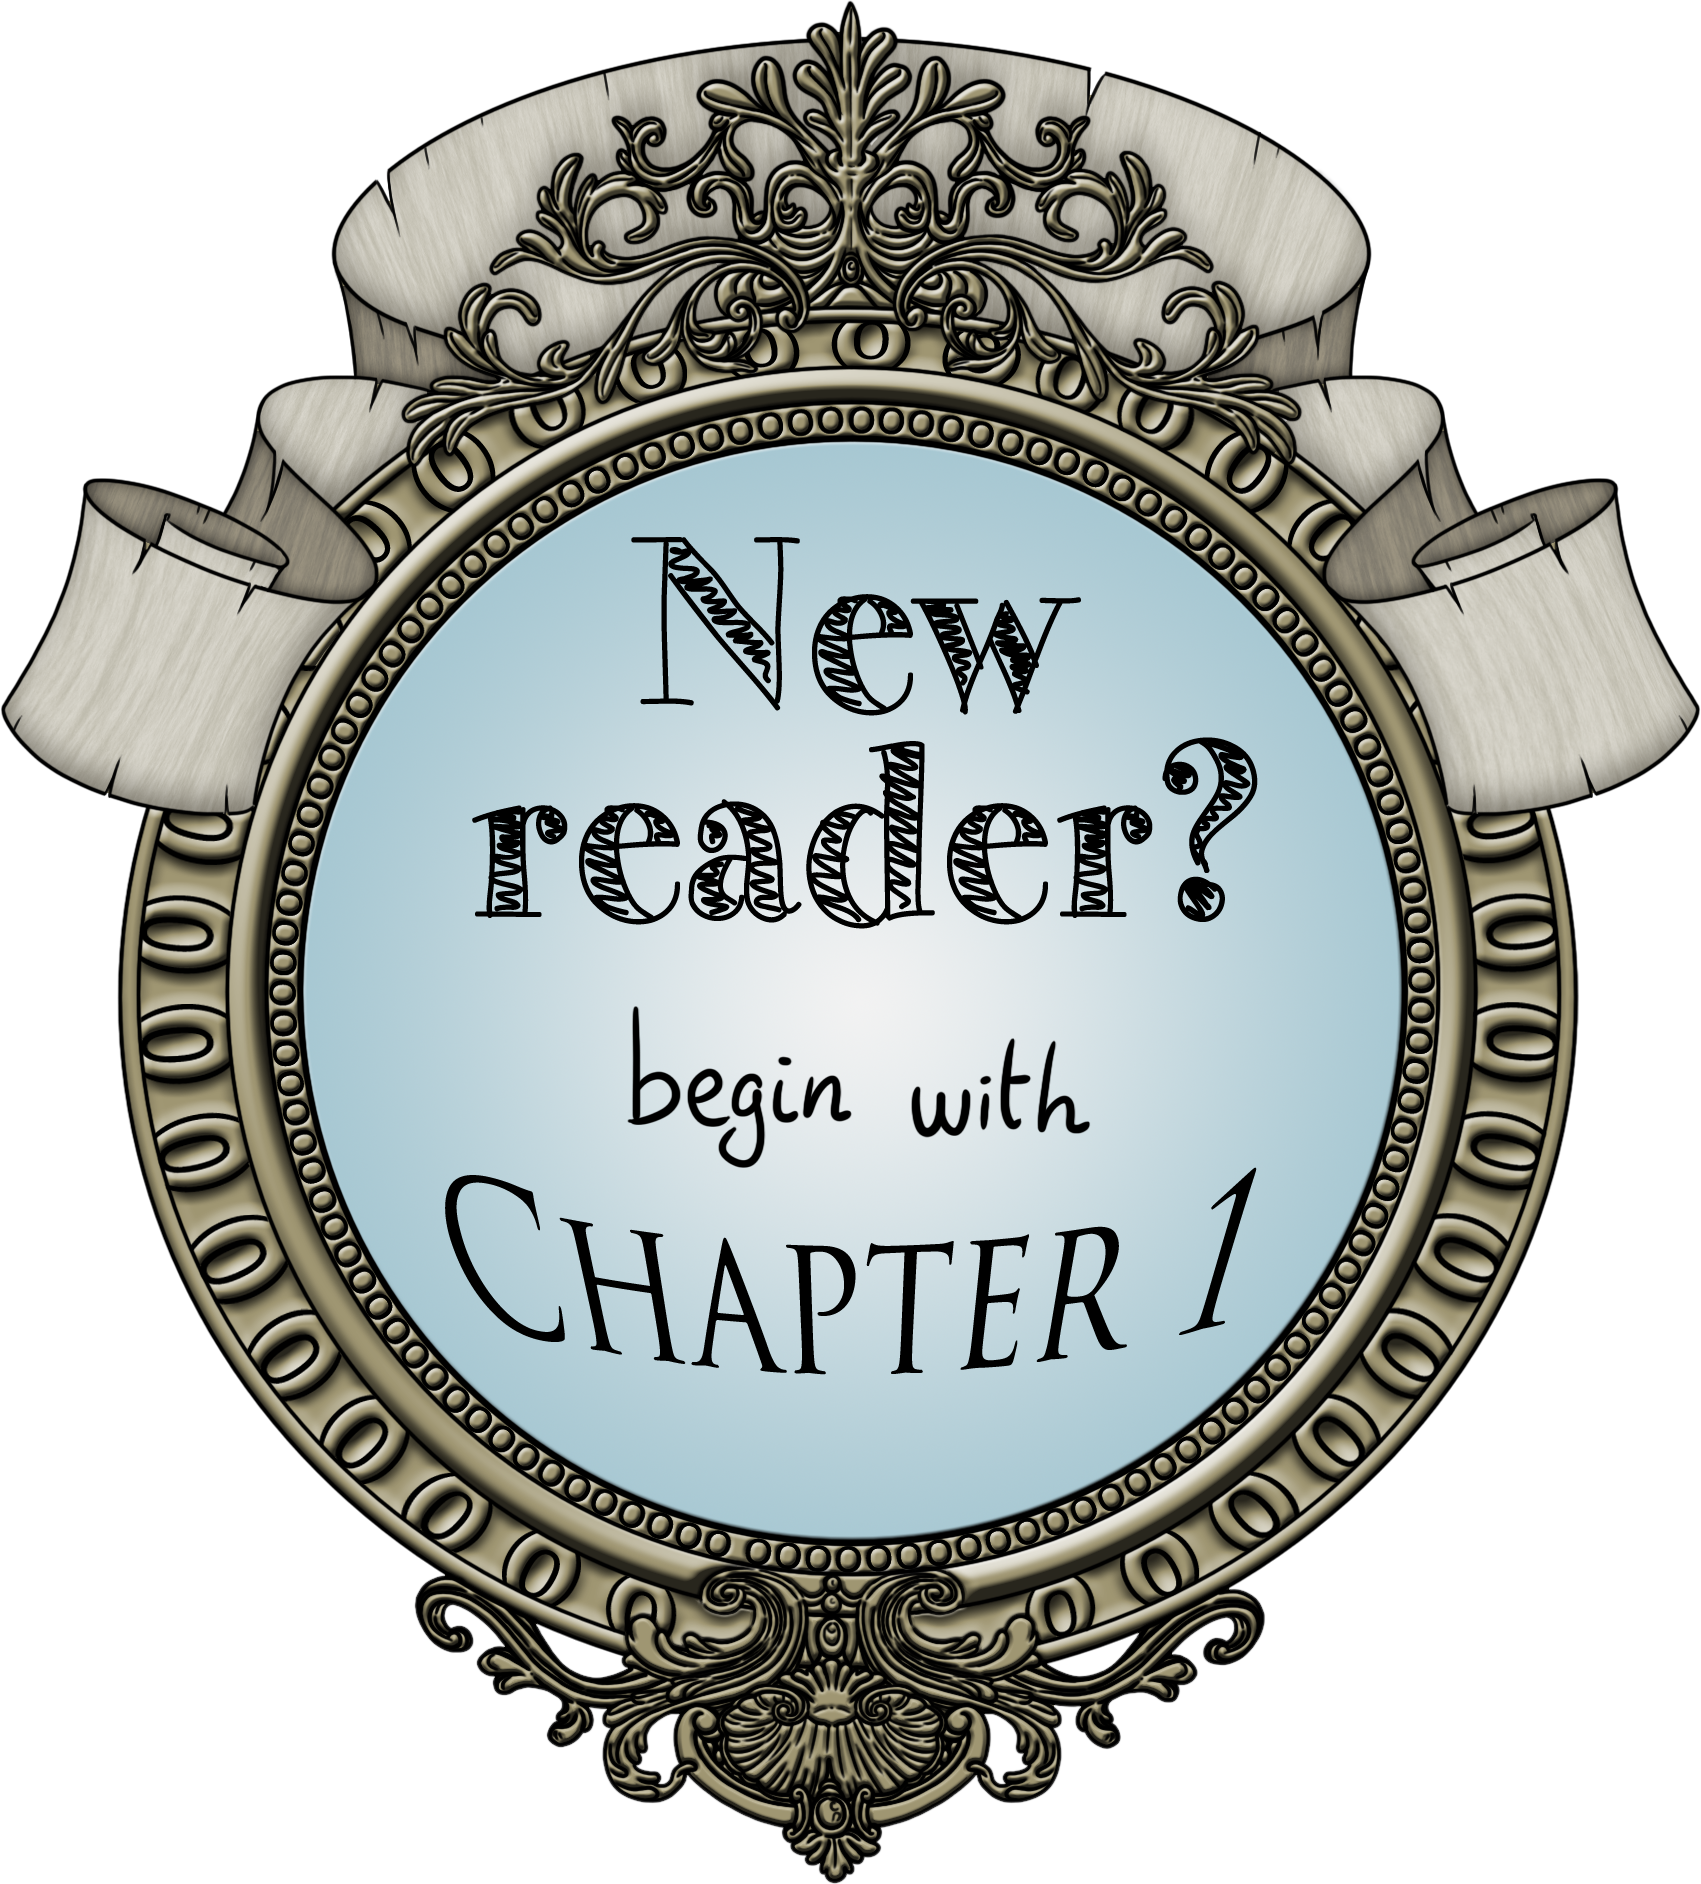 New reader? Begin here!